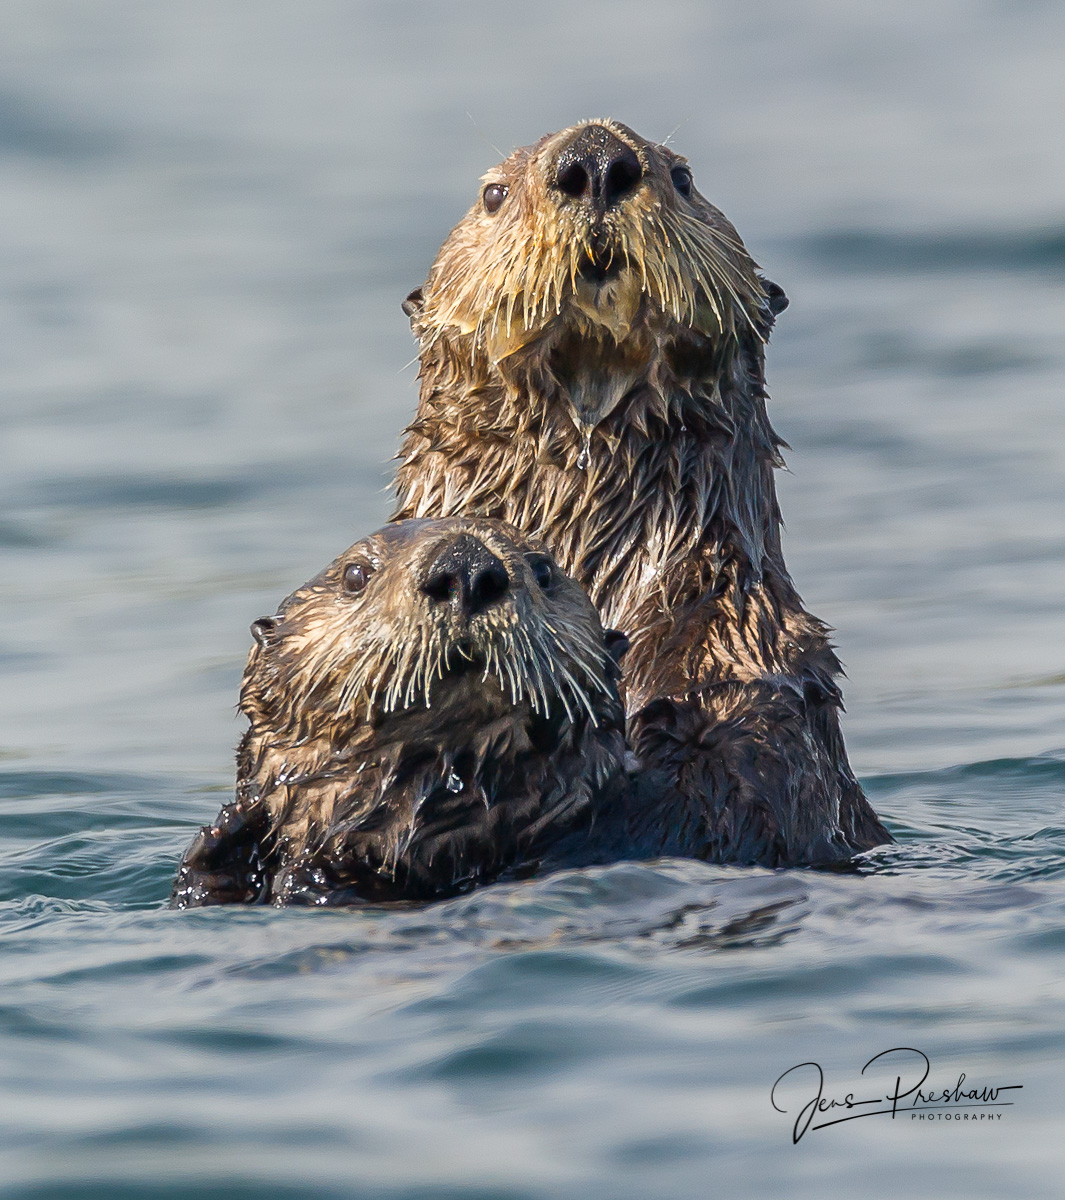 Sea Otters, Enhydra lutris, Whiskers, Bull Kelp, Vancouver Island, British Columbia, Pacific Ocean, West Coast, Canada, Summer, photo